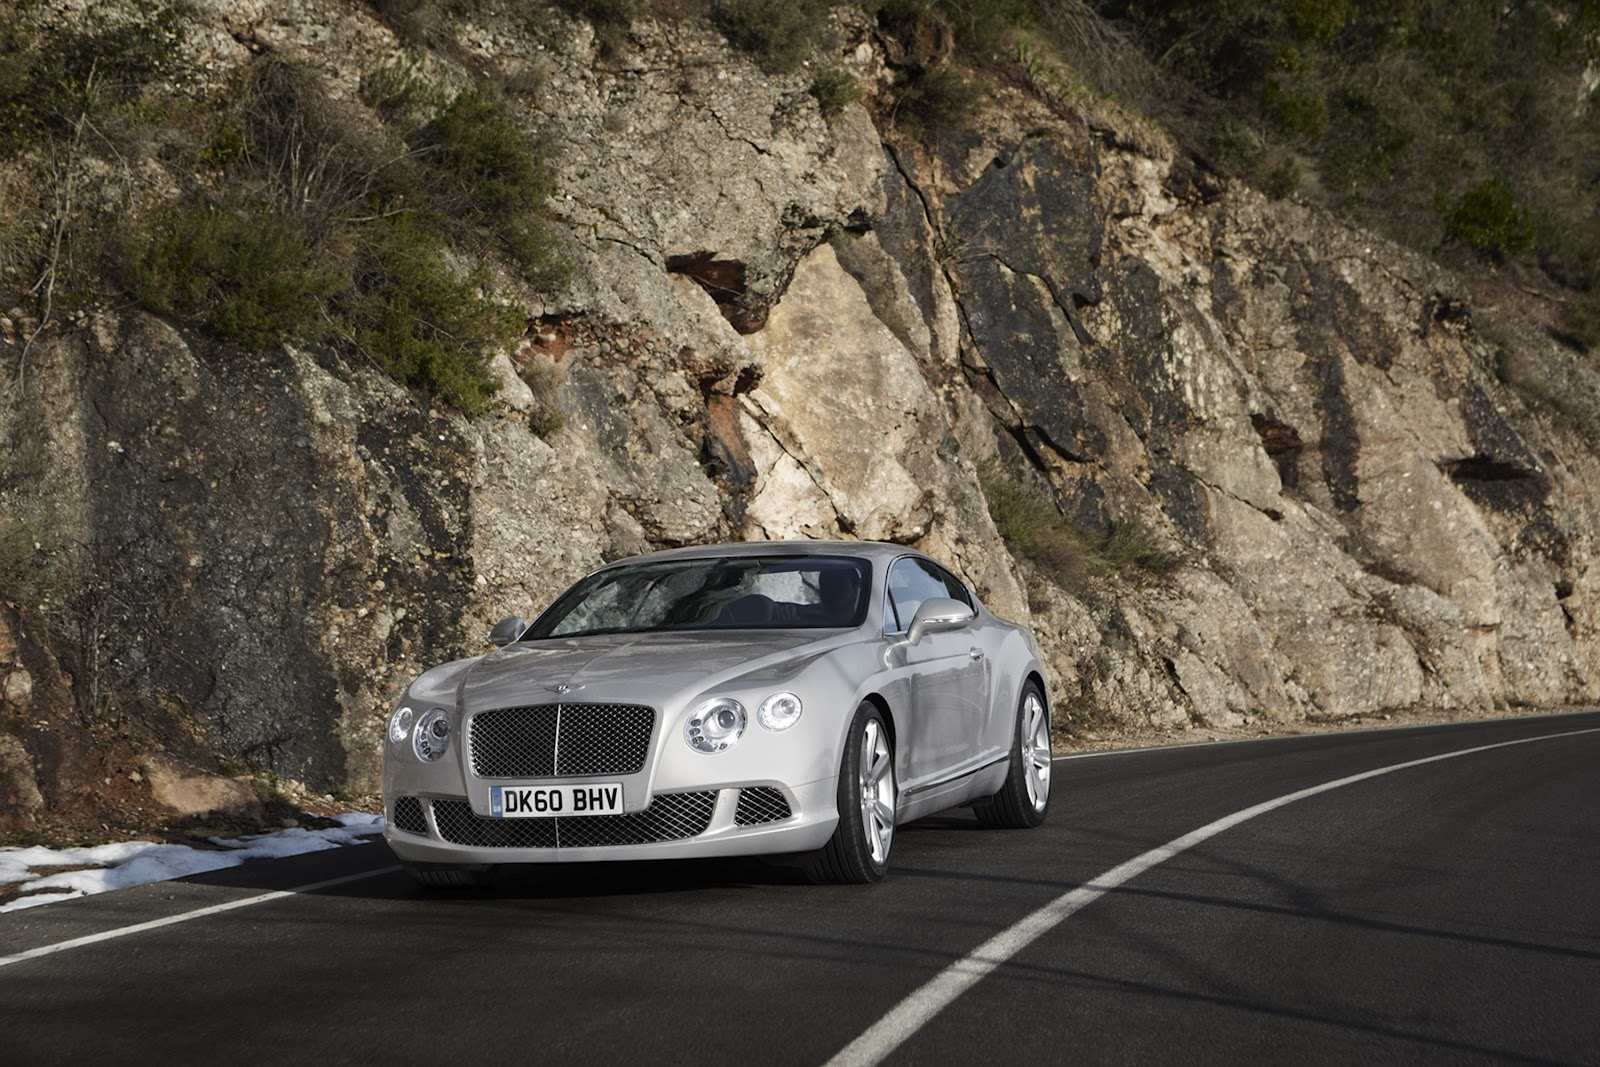 2013 Bentley GTC Luxury